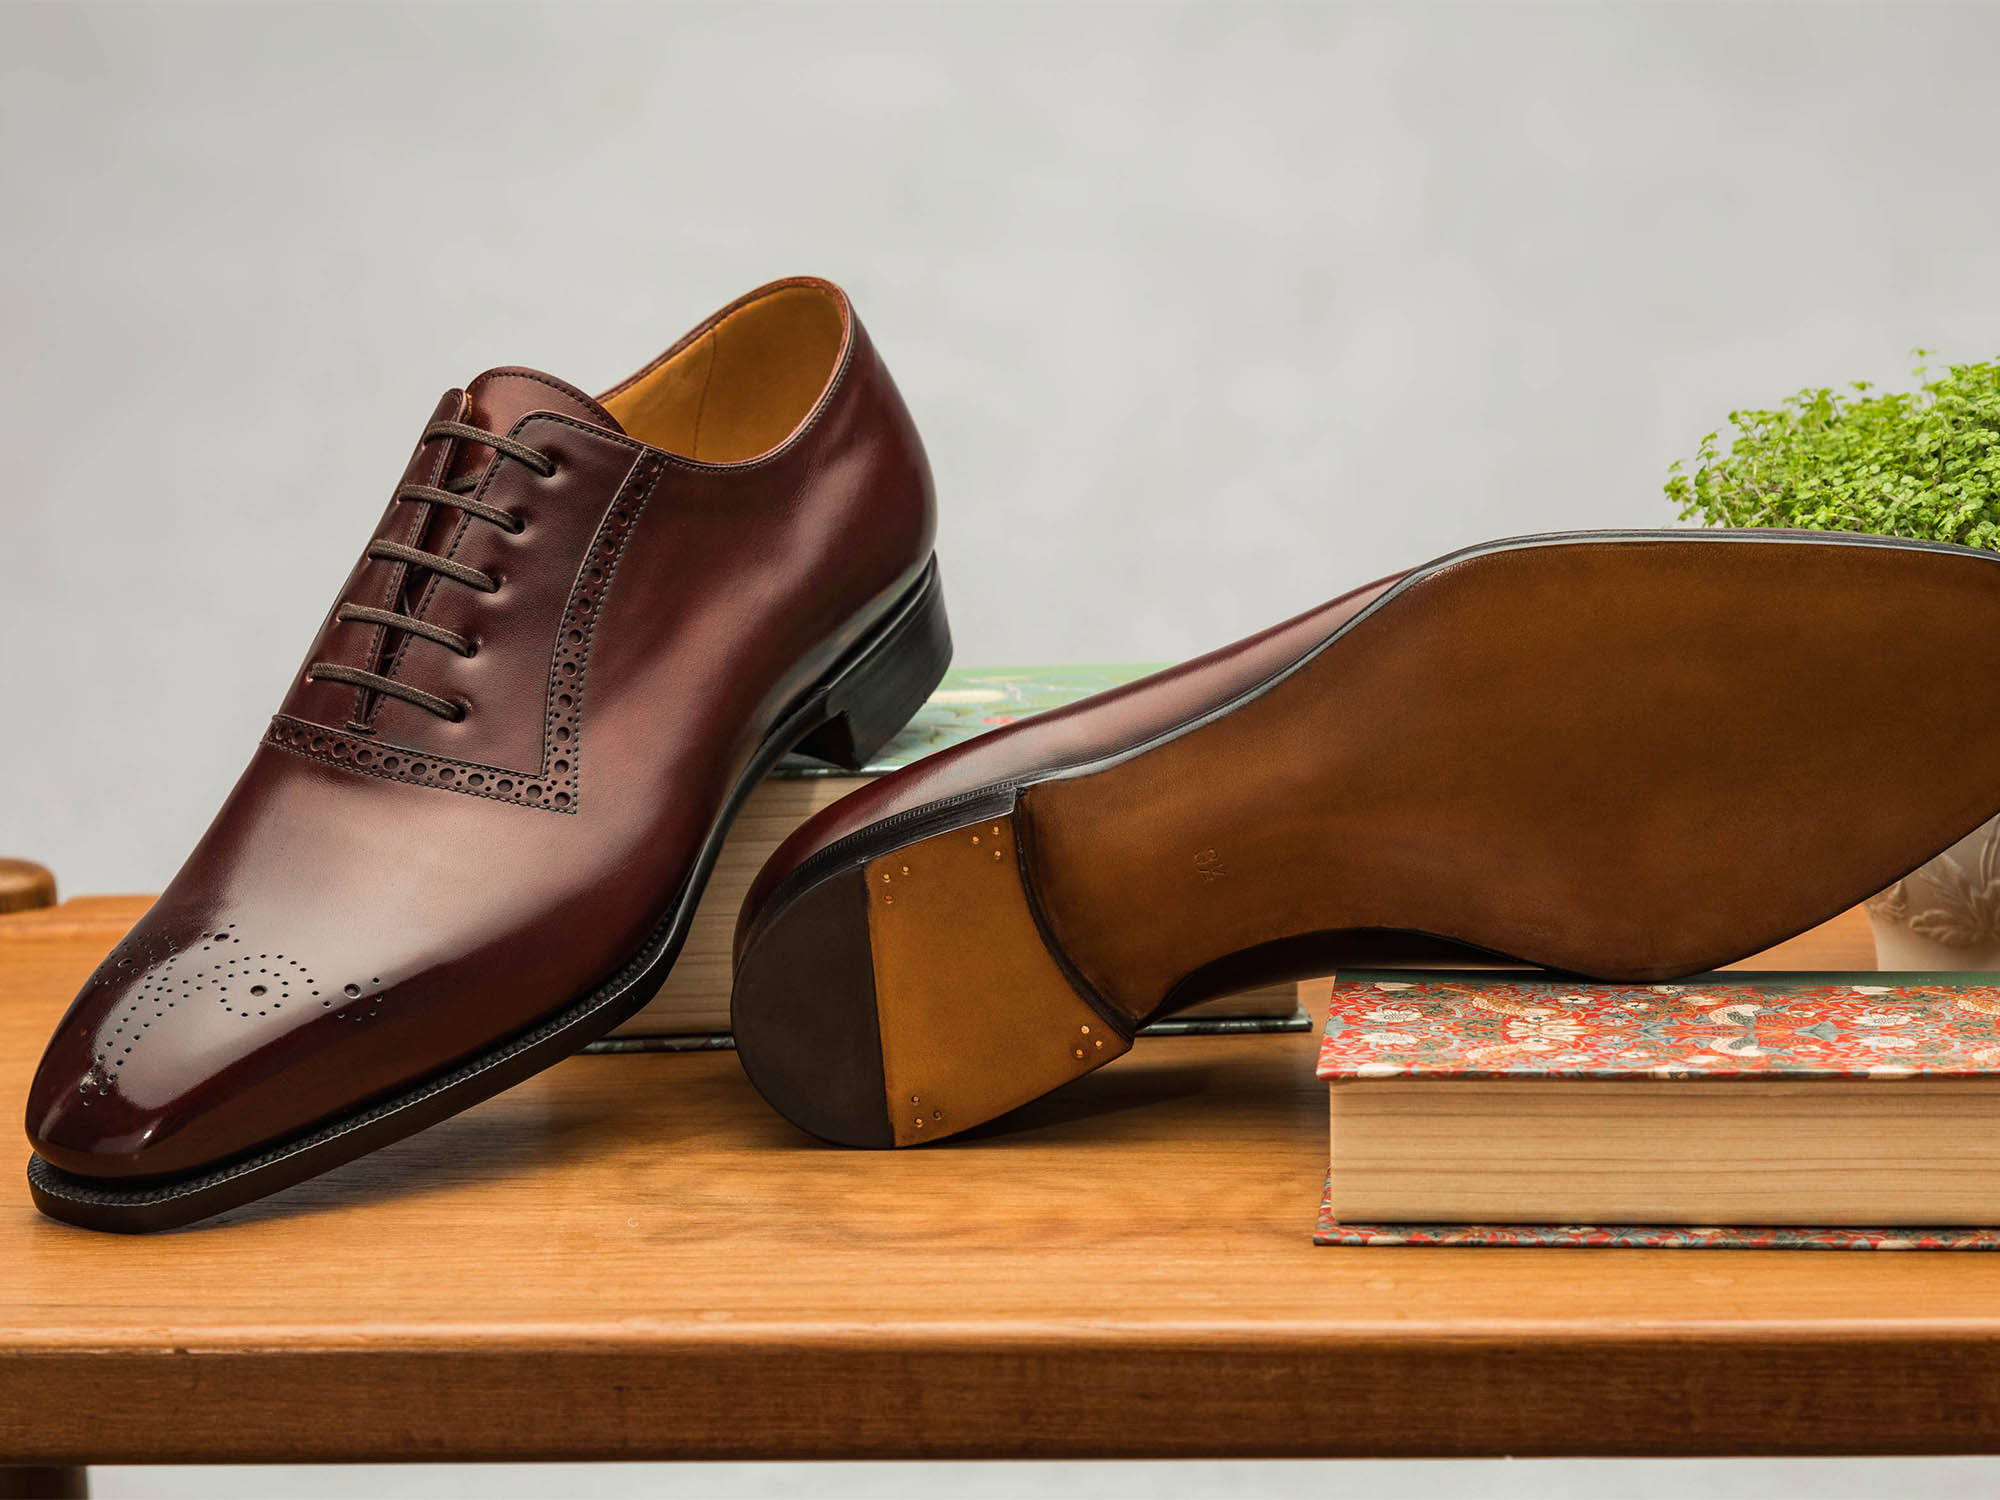 The sole has a bevelled waist and a narrow stitching which continues in under the heel